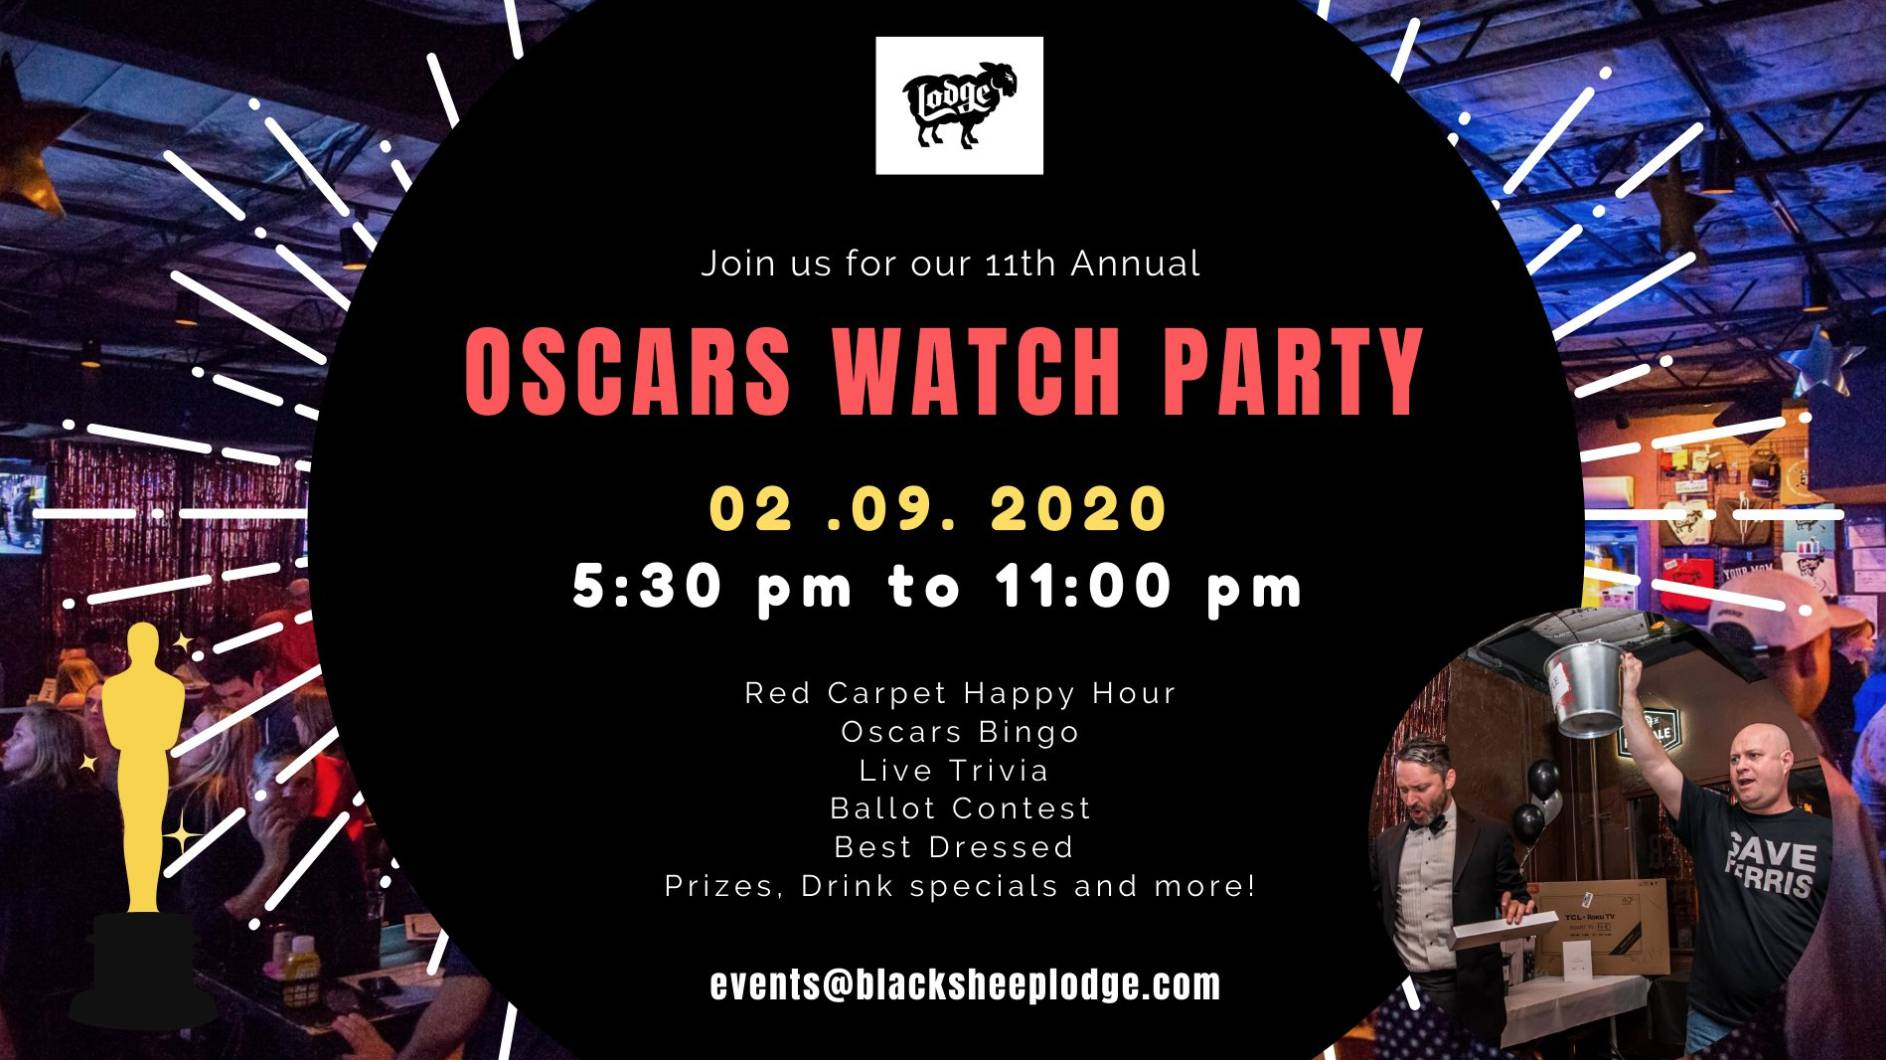 11th Annual Oscars Watch Party